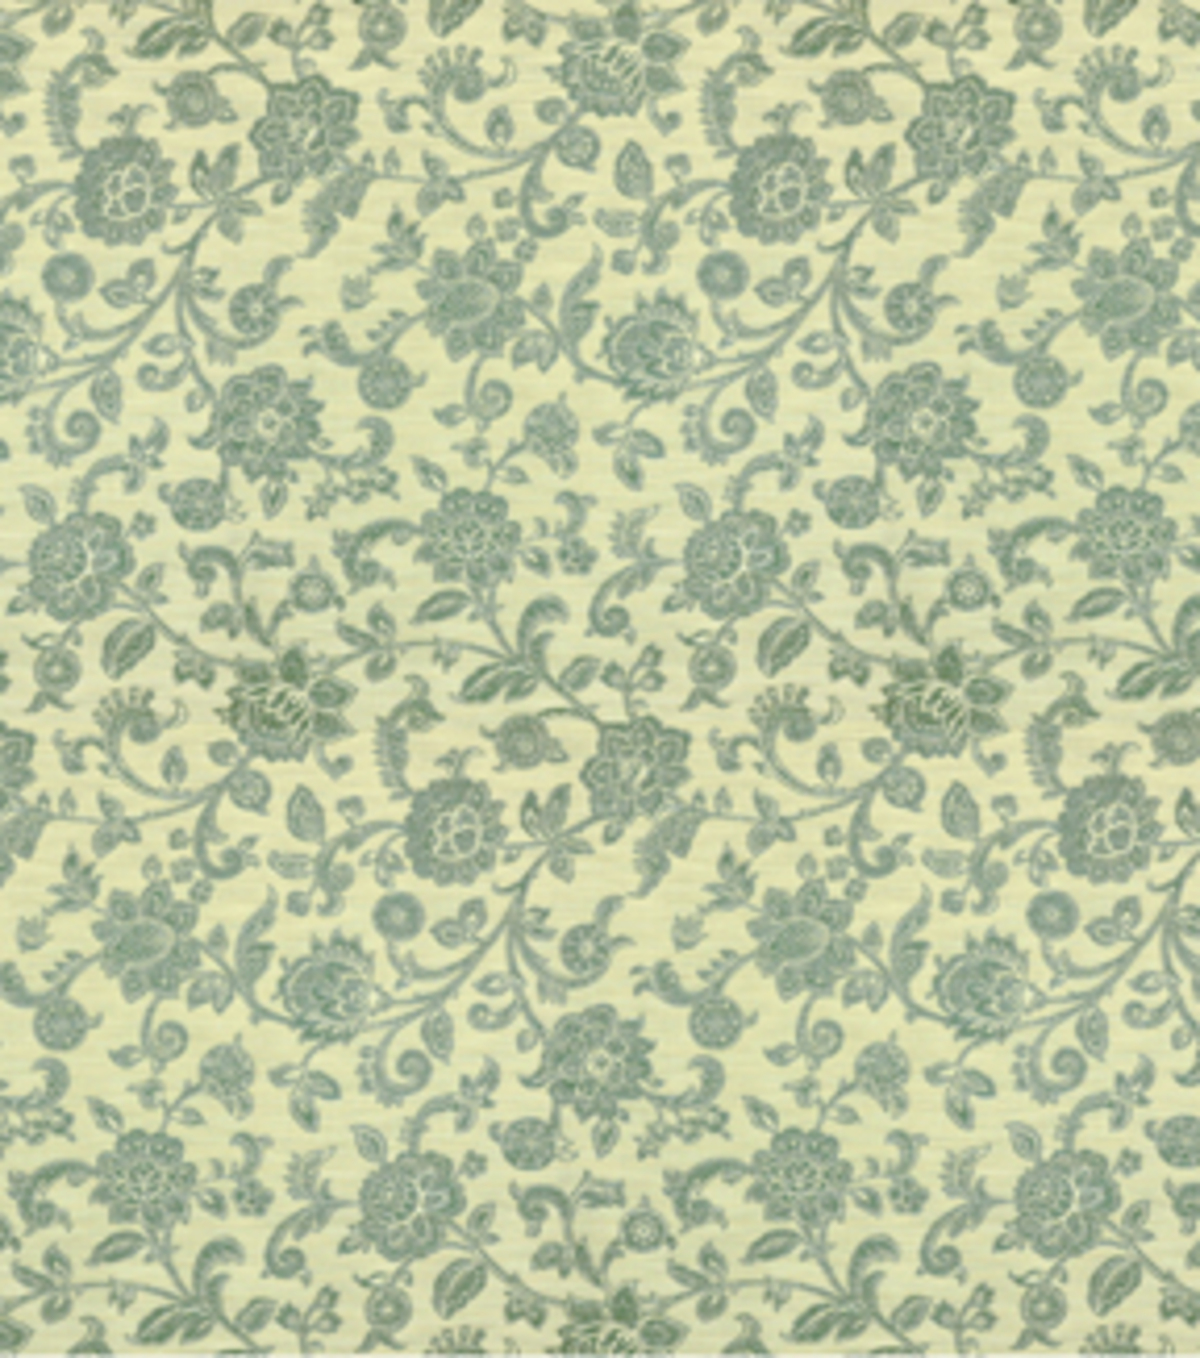 Home Decor 8\u0022x8\u0022 Fabric Swatch-Covington Courtney 545 Mineral